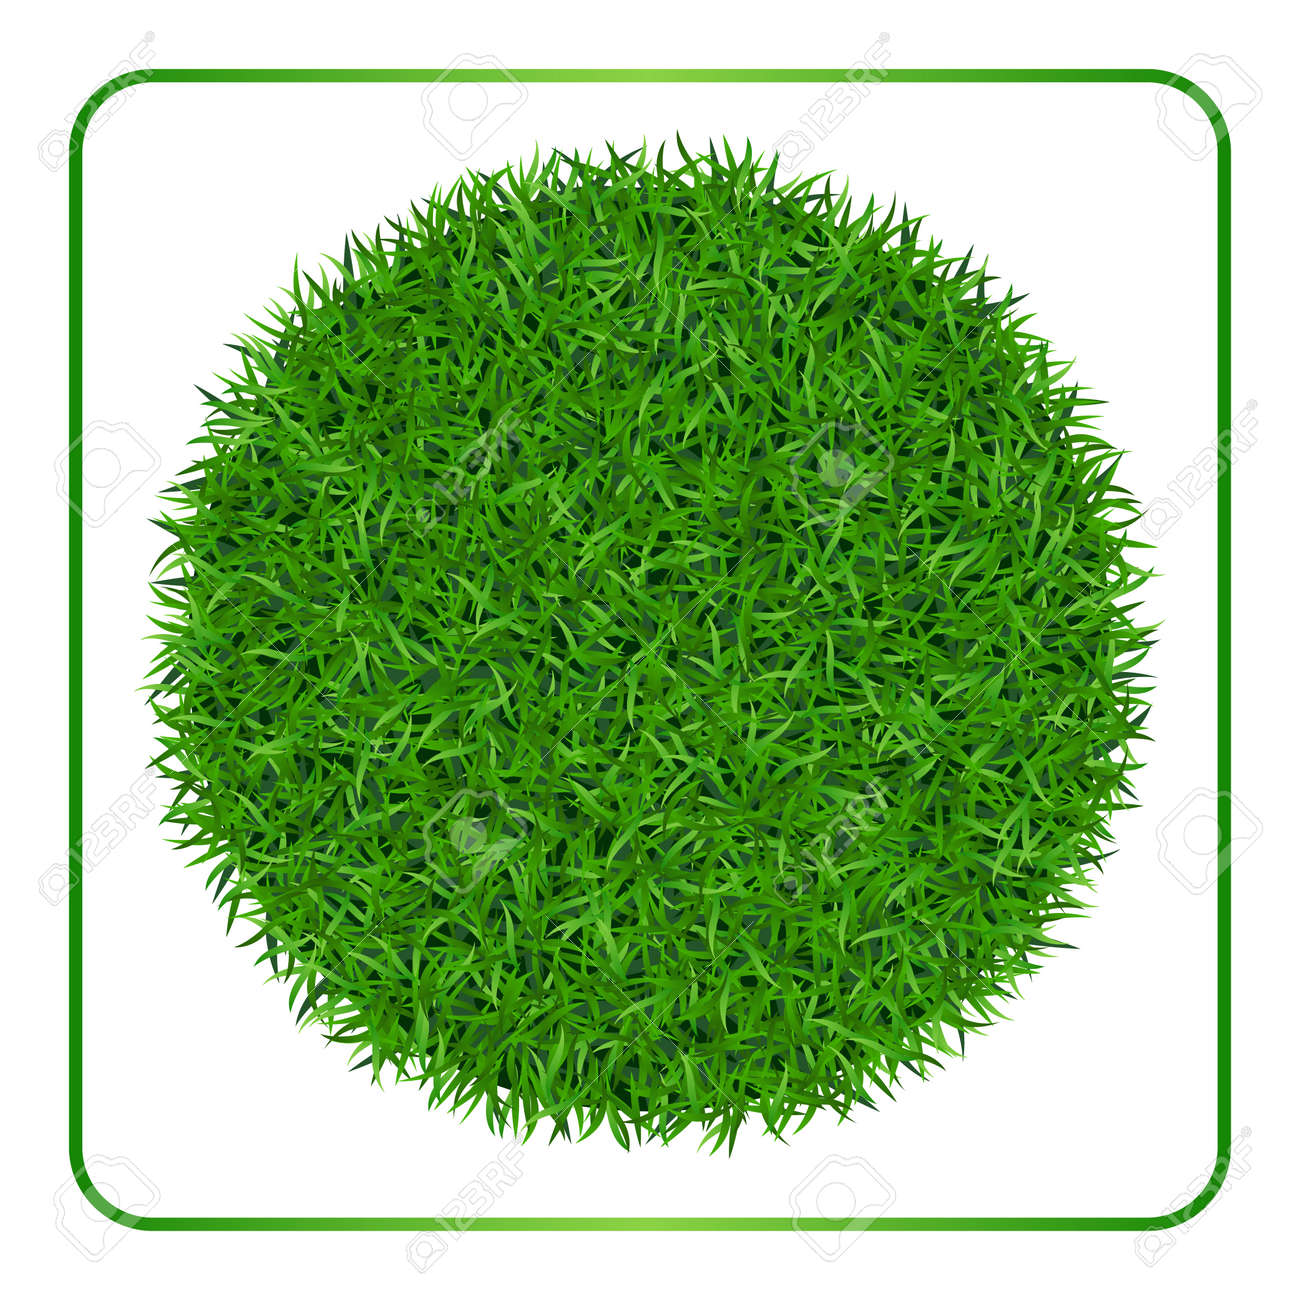 Green Grass Background. Circle Field Template Isolated On White ...